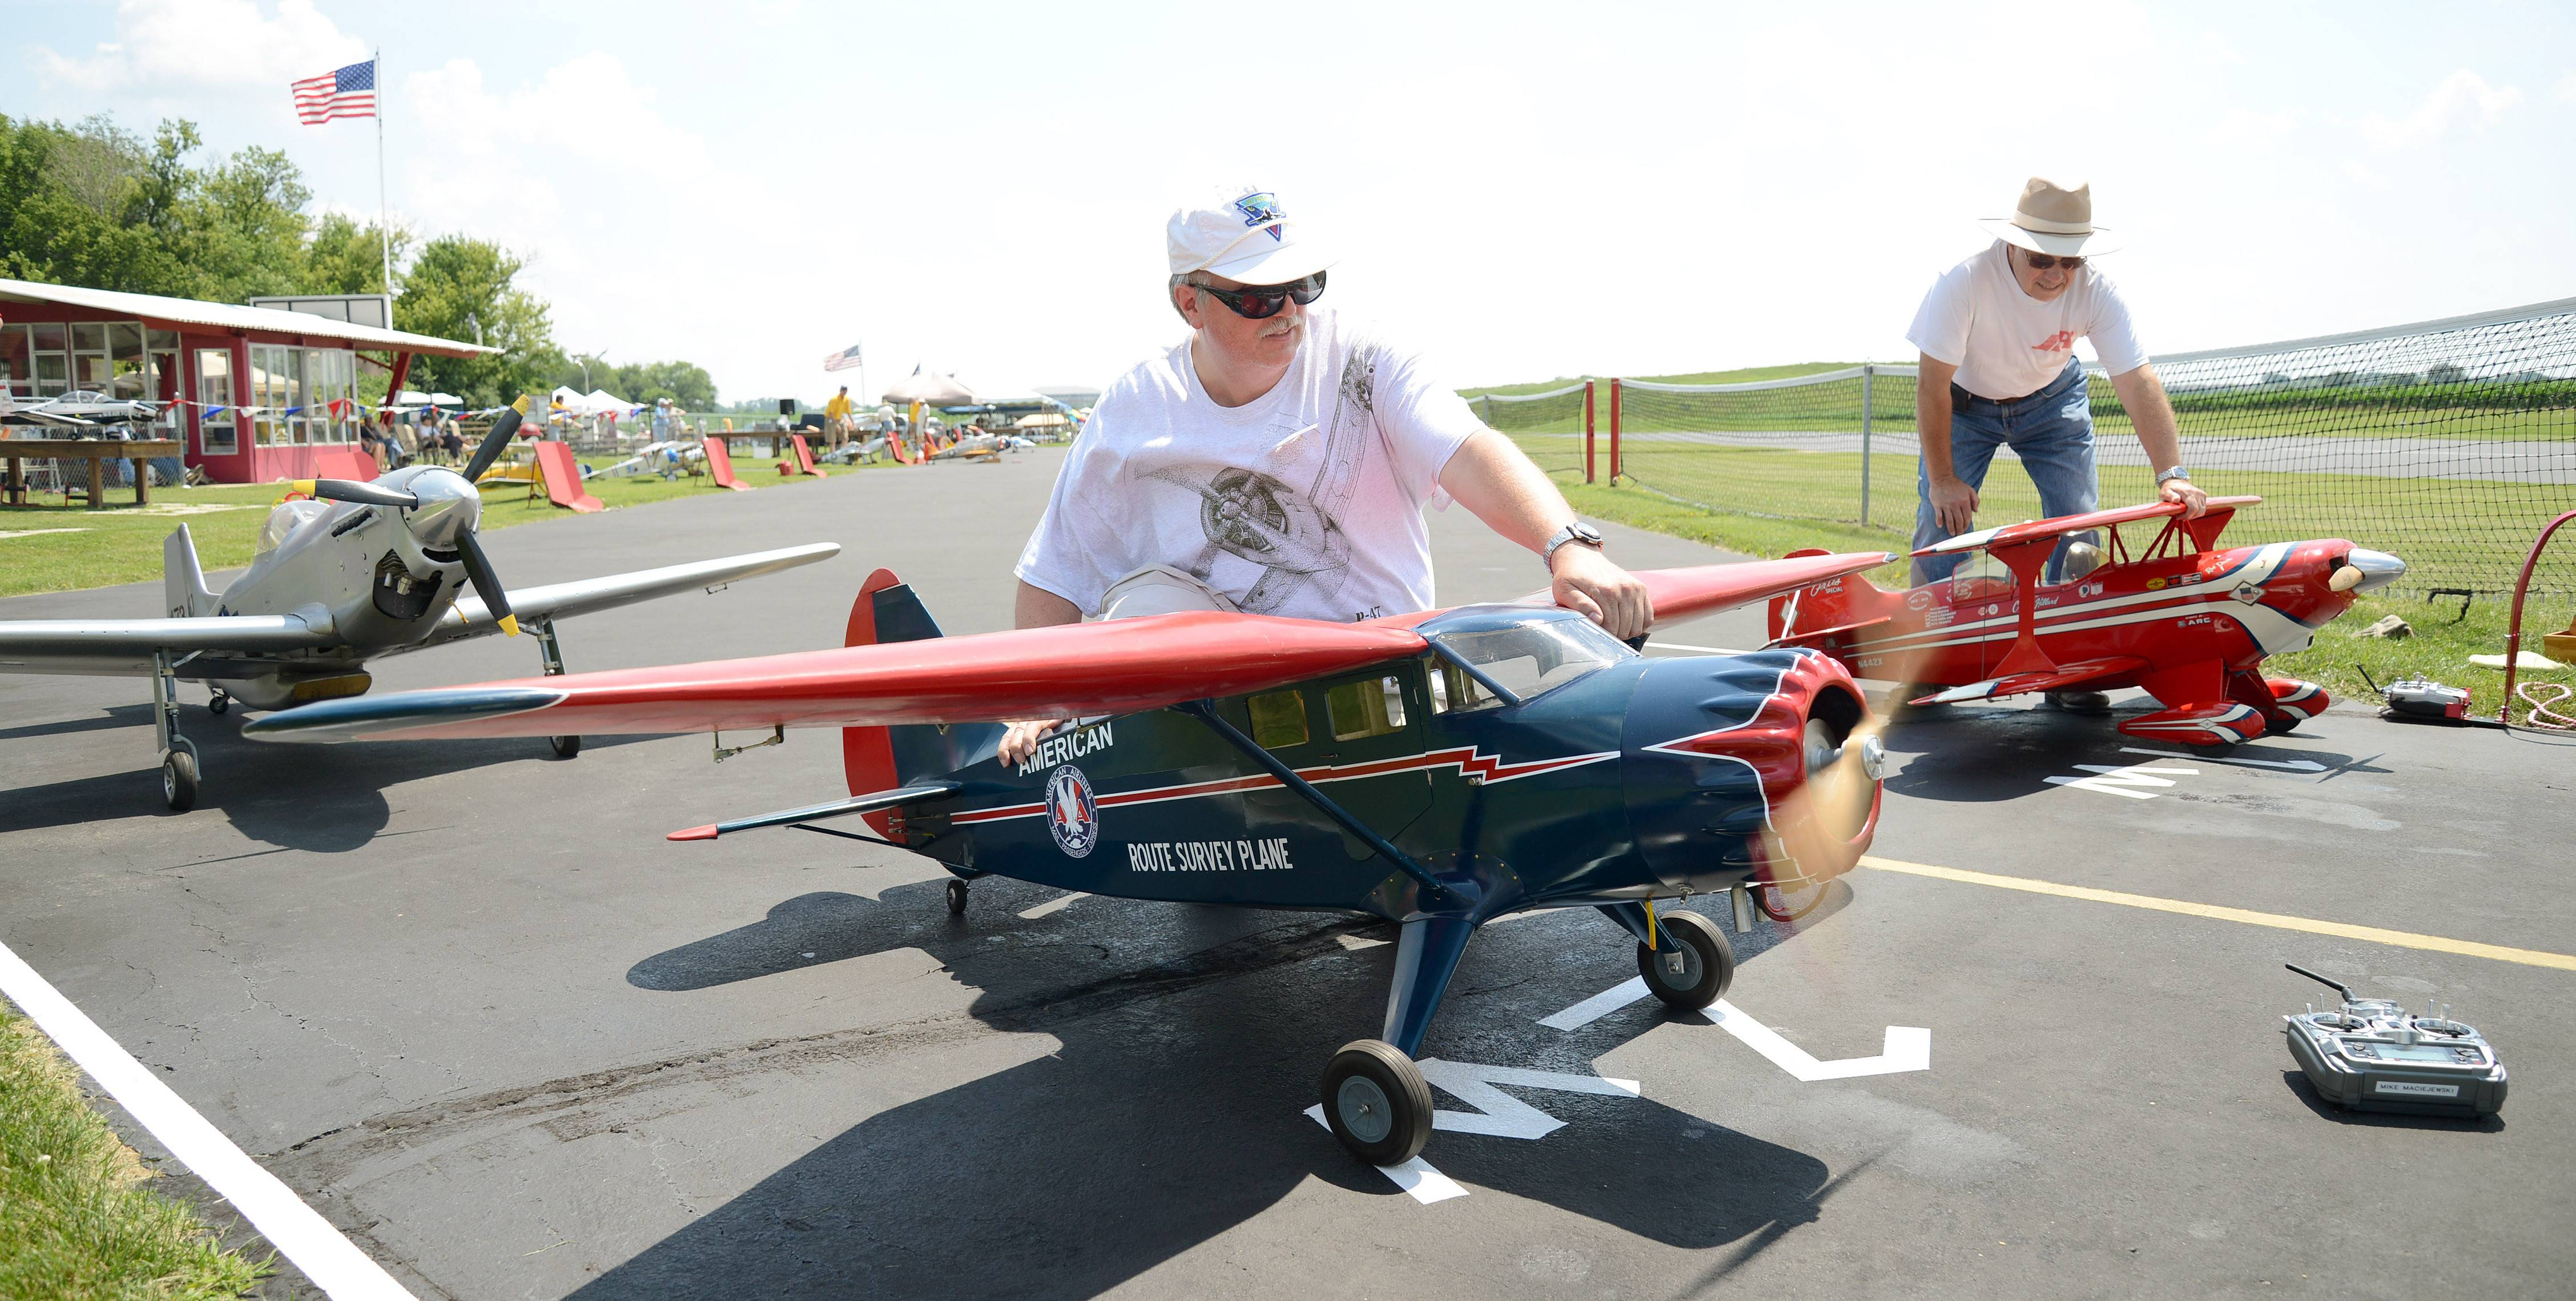 Mike Maciejewski of St. Charles hangs onto his Stintson Reliant R9 plane as the engine warms up readying for take off. Maciejewski has been a member of the Surburban R.C. Barnstormers, Inc. model airplane flying club for about 30 years, and often flies at Fox Valley Aero Club events.